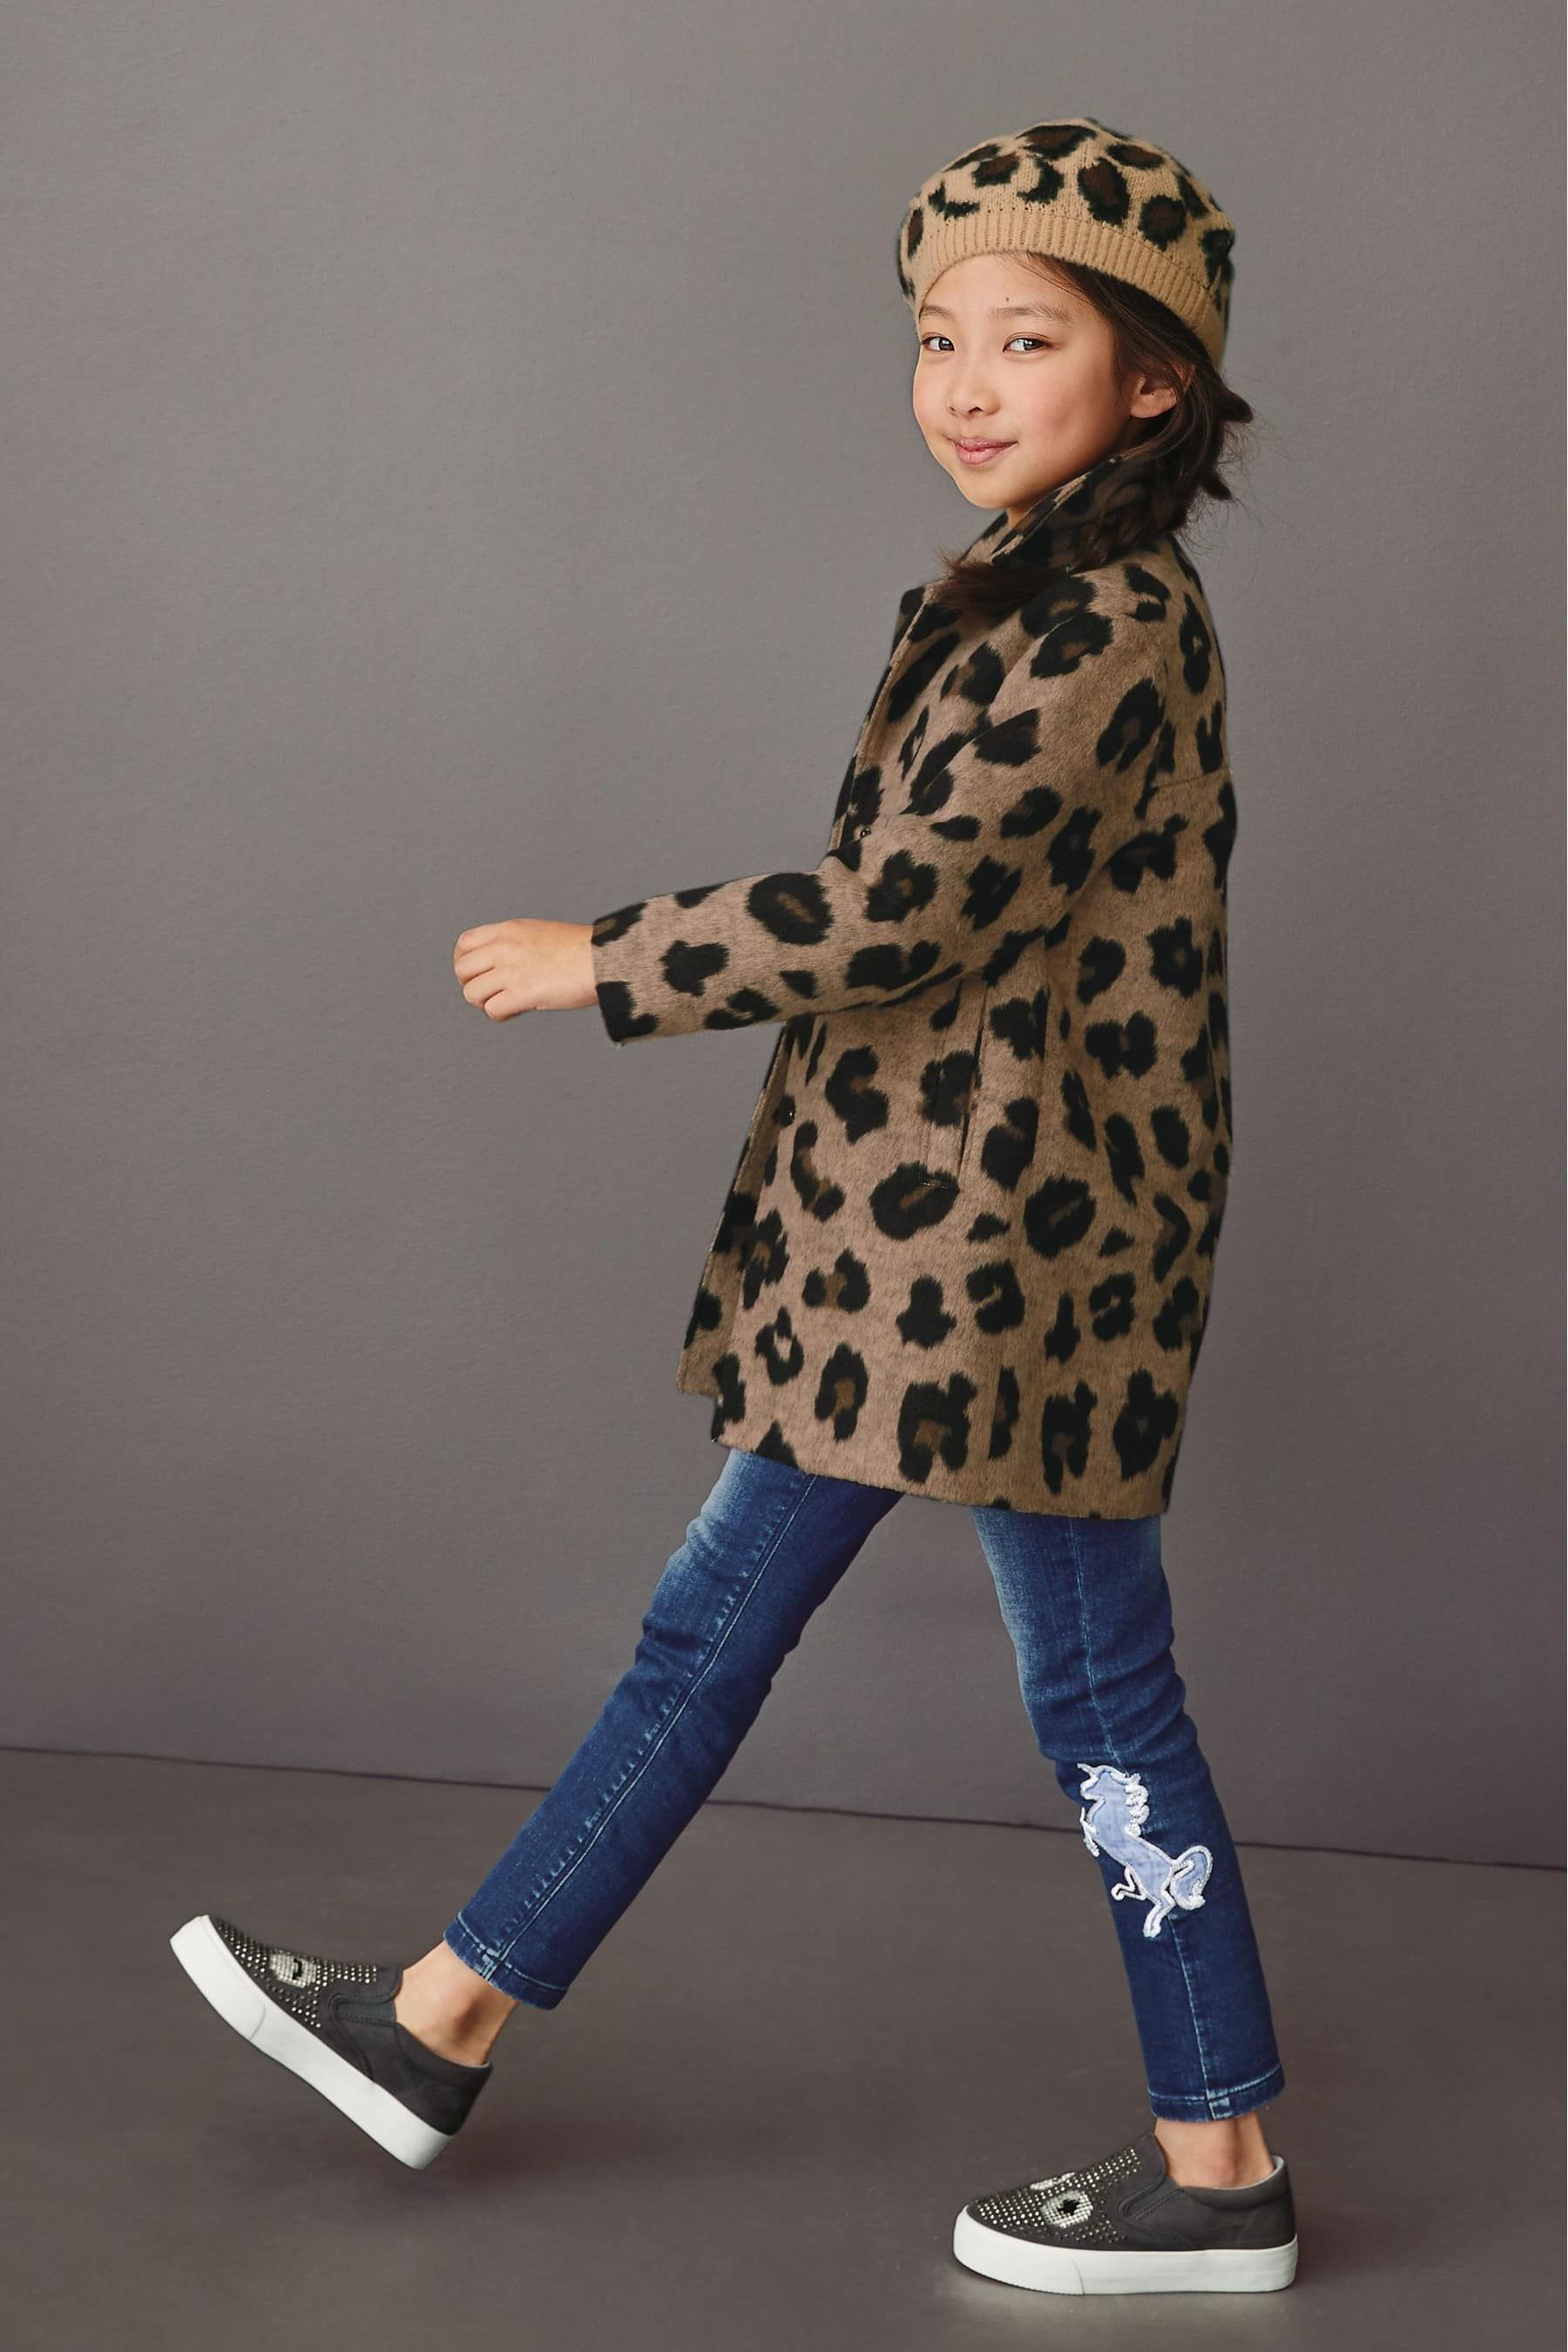 Buy Animal Print Coat 3 16yrs From The Next Uk Online Shop